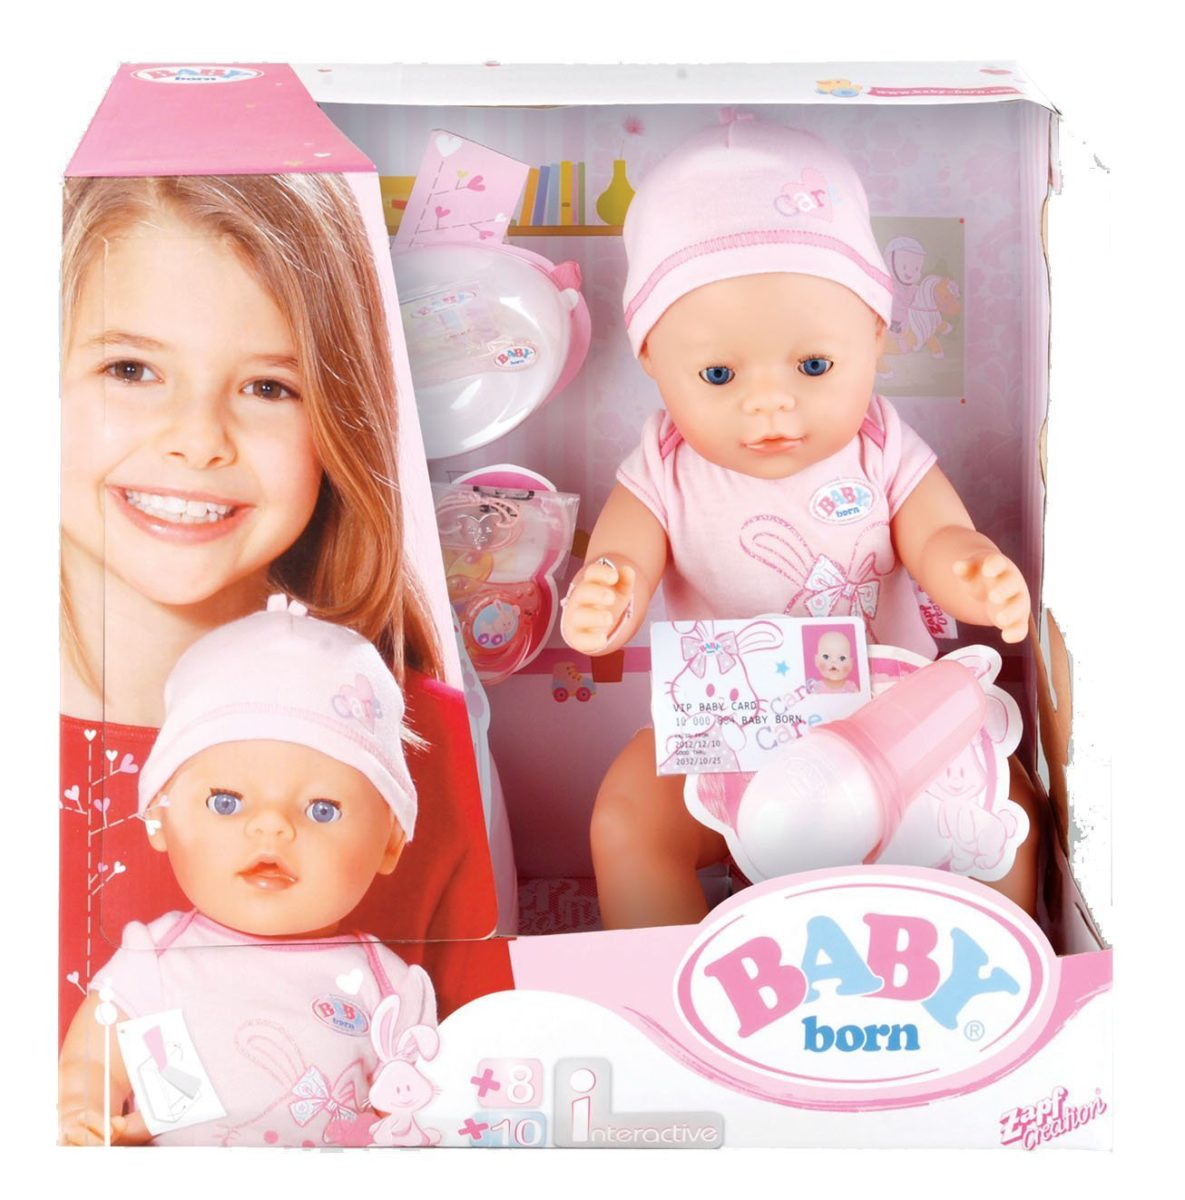 review baby born interactive girl what mummy thinks